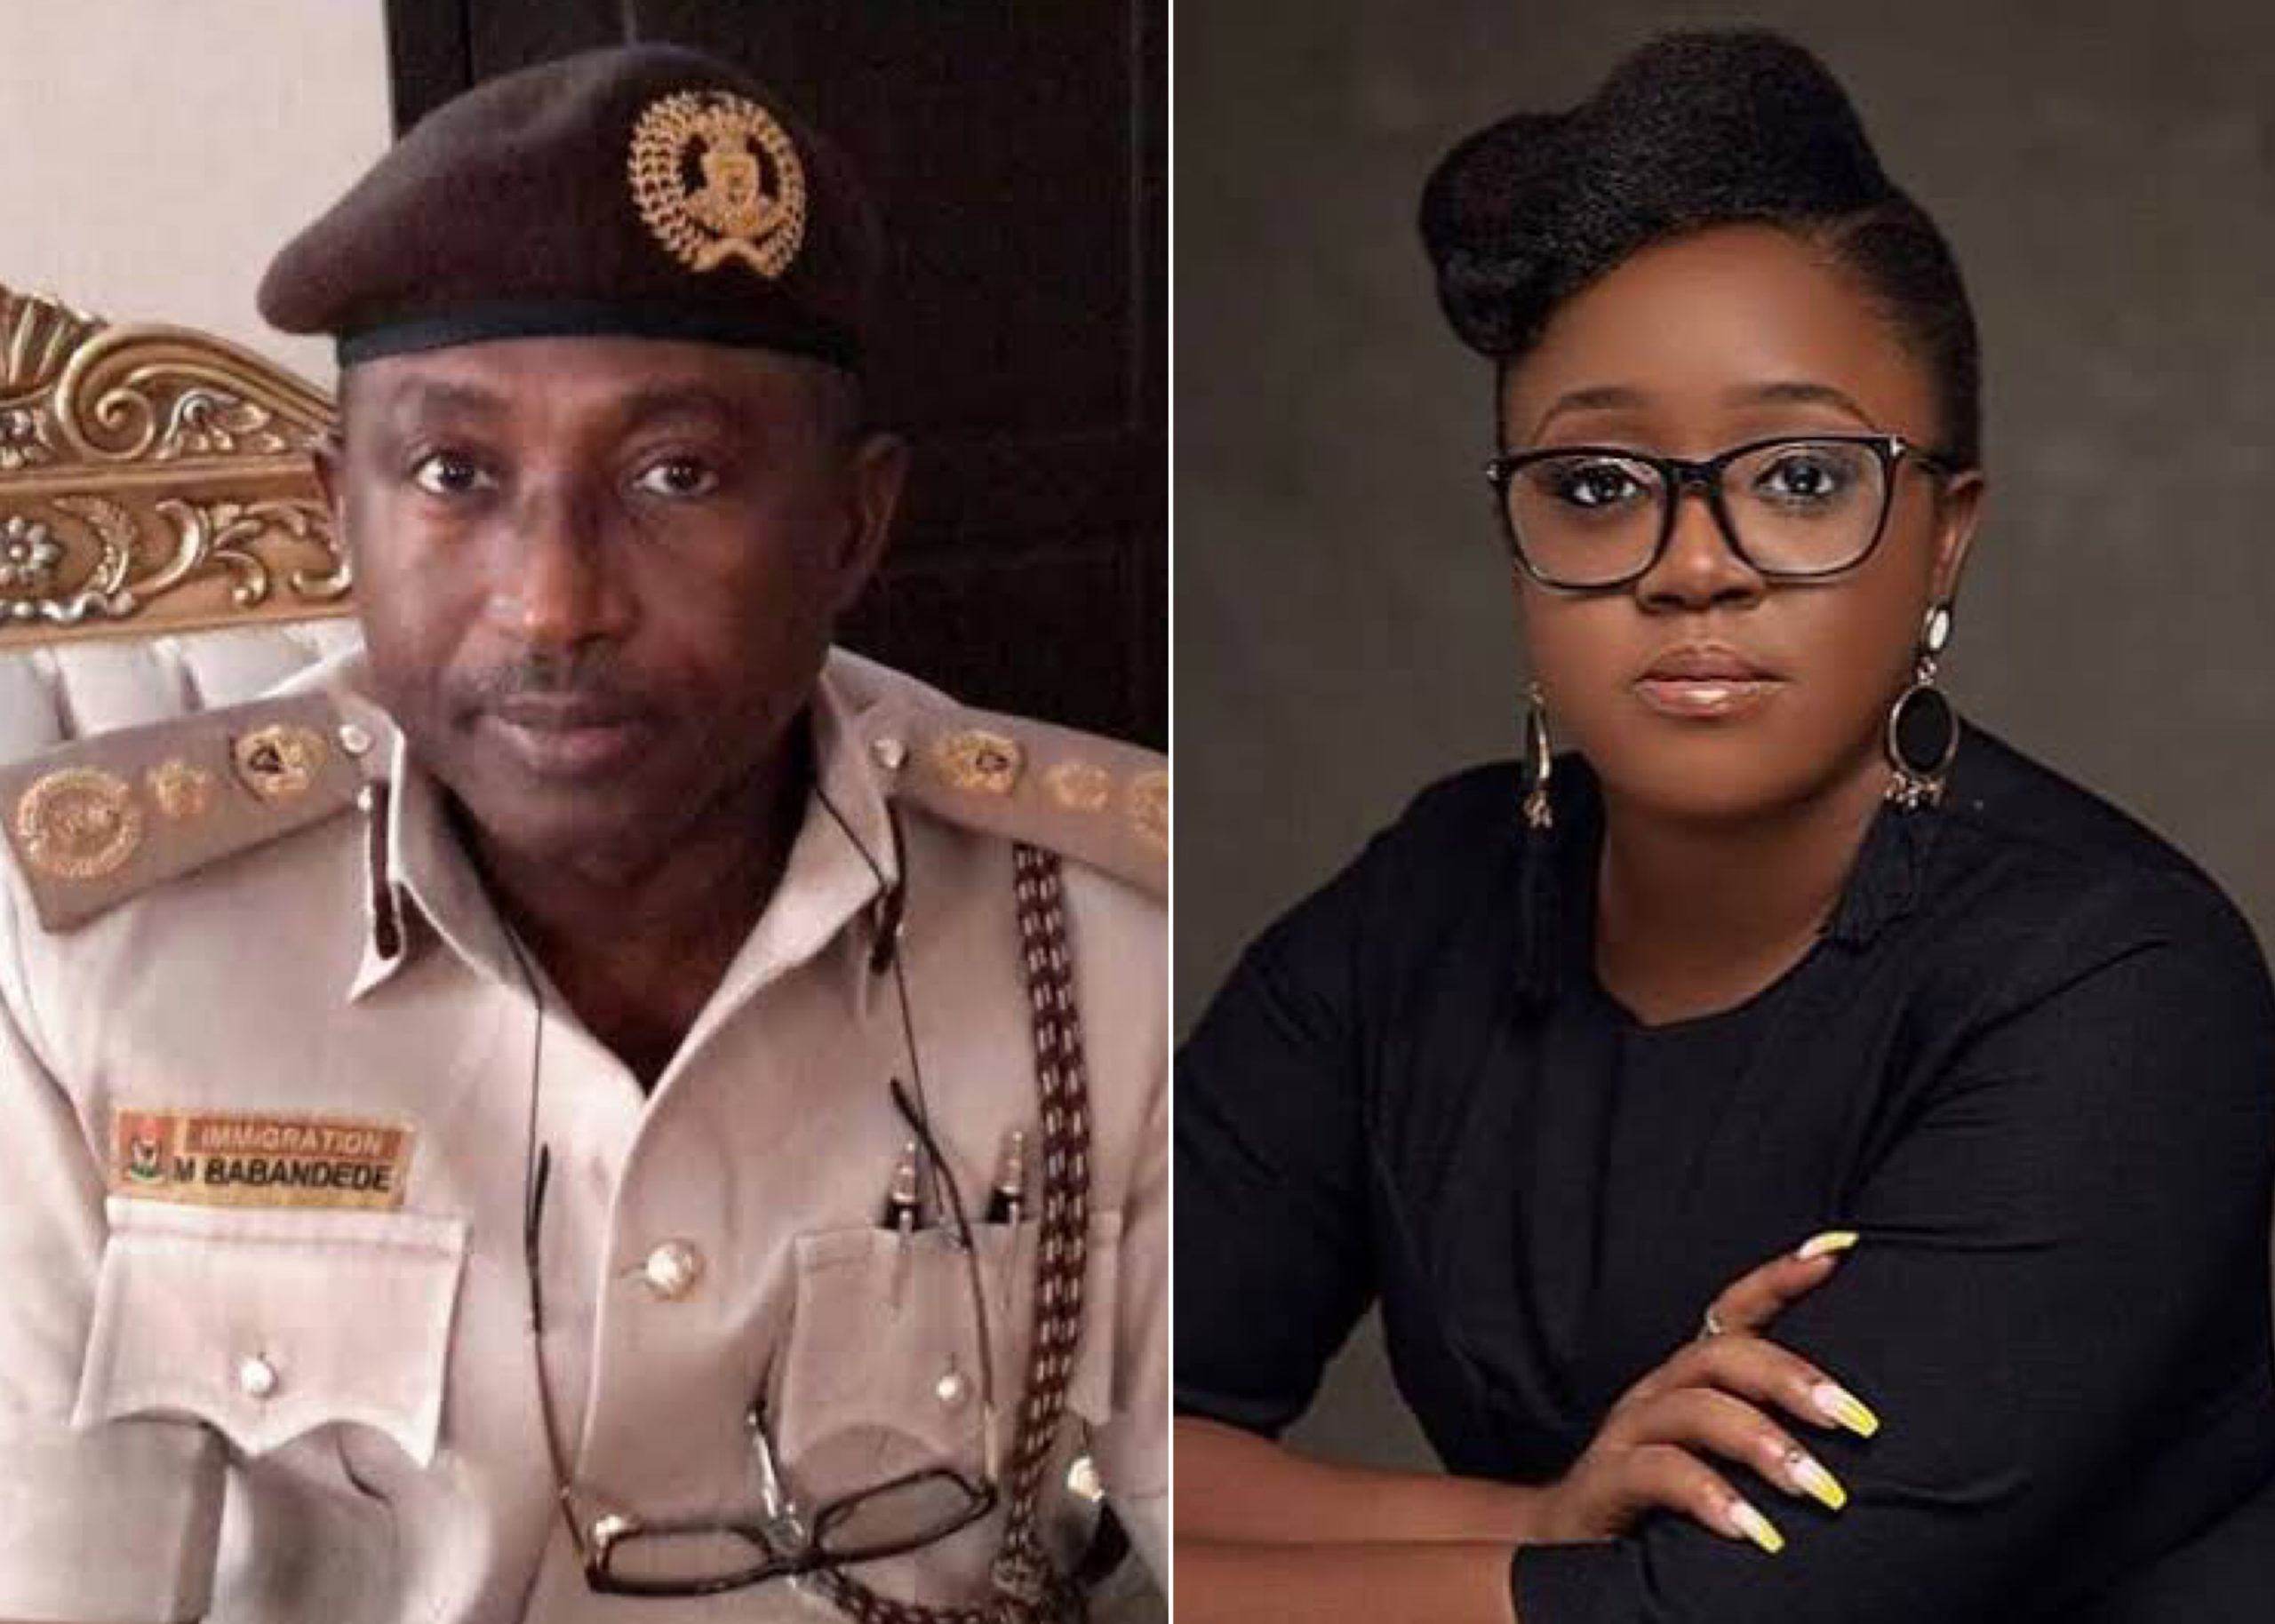 #EndSARS Lawyer Is Clean, Can Travel - Immigration Chief